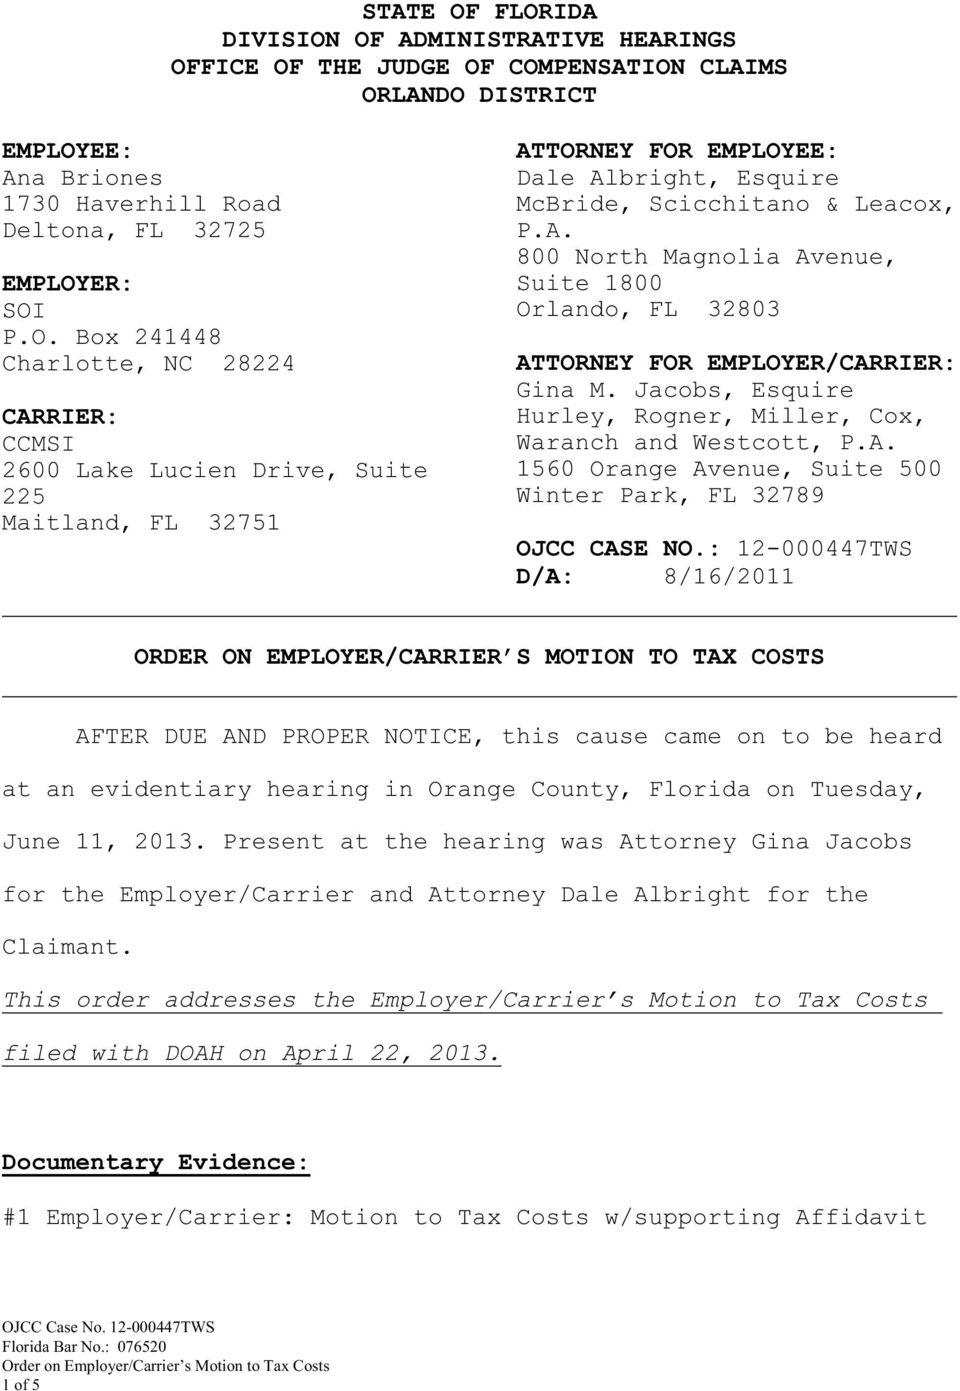 : 12-000447TWS D/A: 8/16/2011 ORDER ON EMPLOYER/CARRIER S MOTION TO TAX COSTS AFTER DUE AND PROPER NOTICE, this cause came on to be heard at an evidentiary hearing in Orange County, Florida on